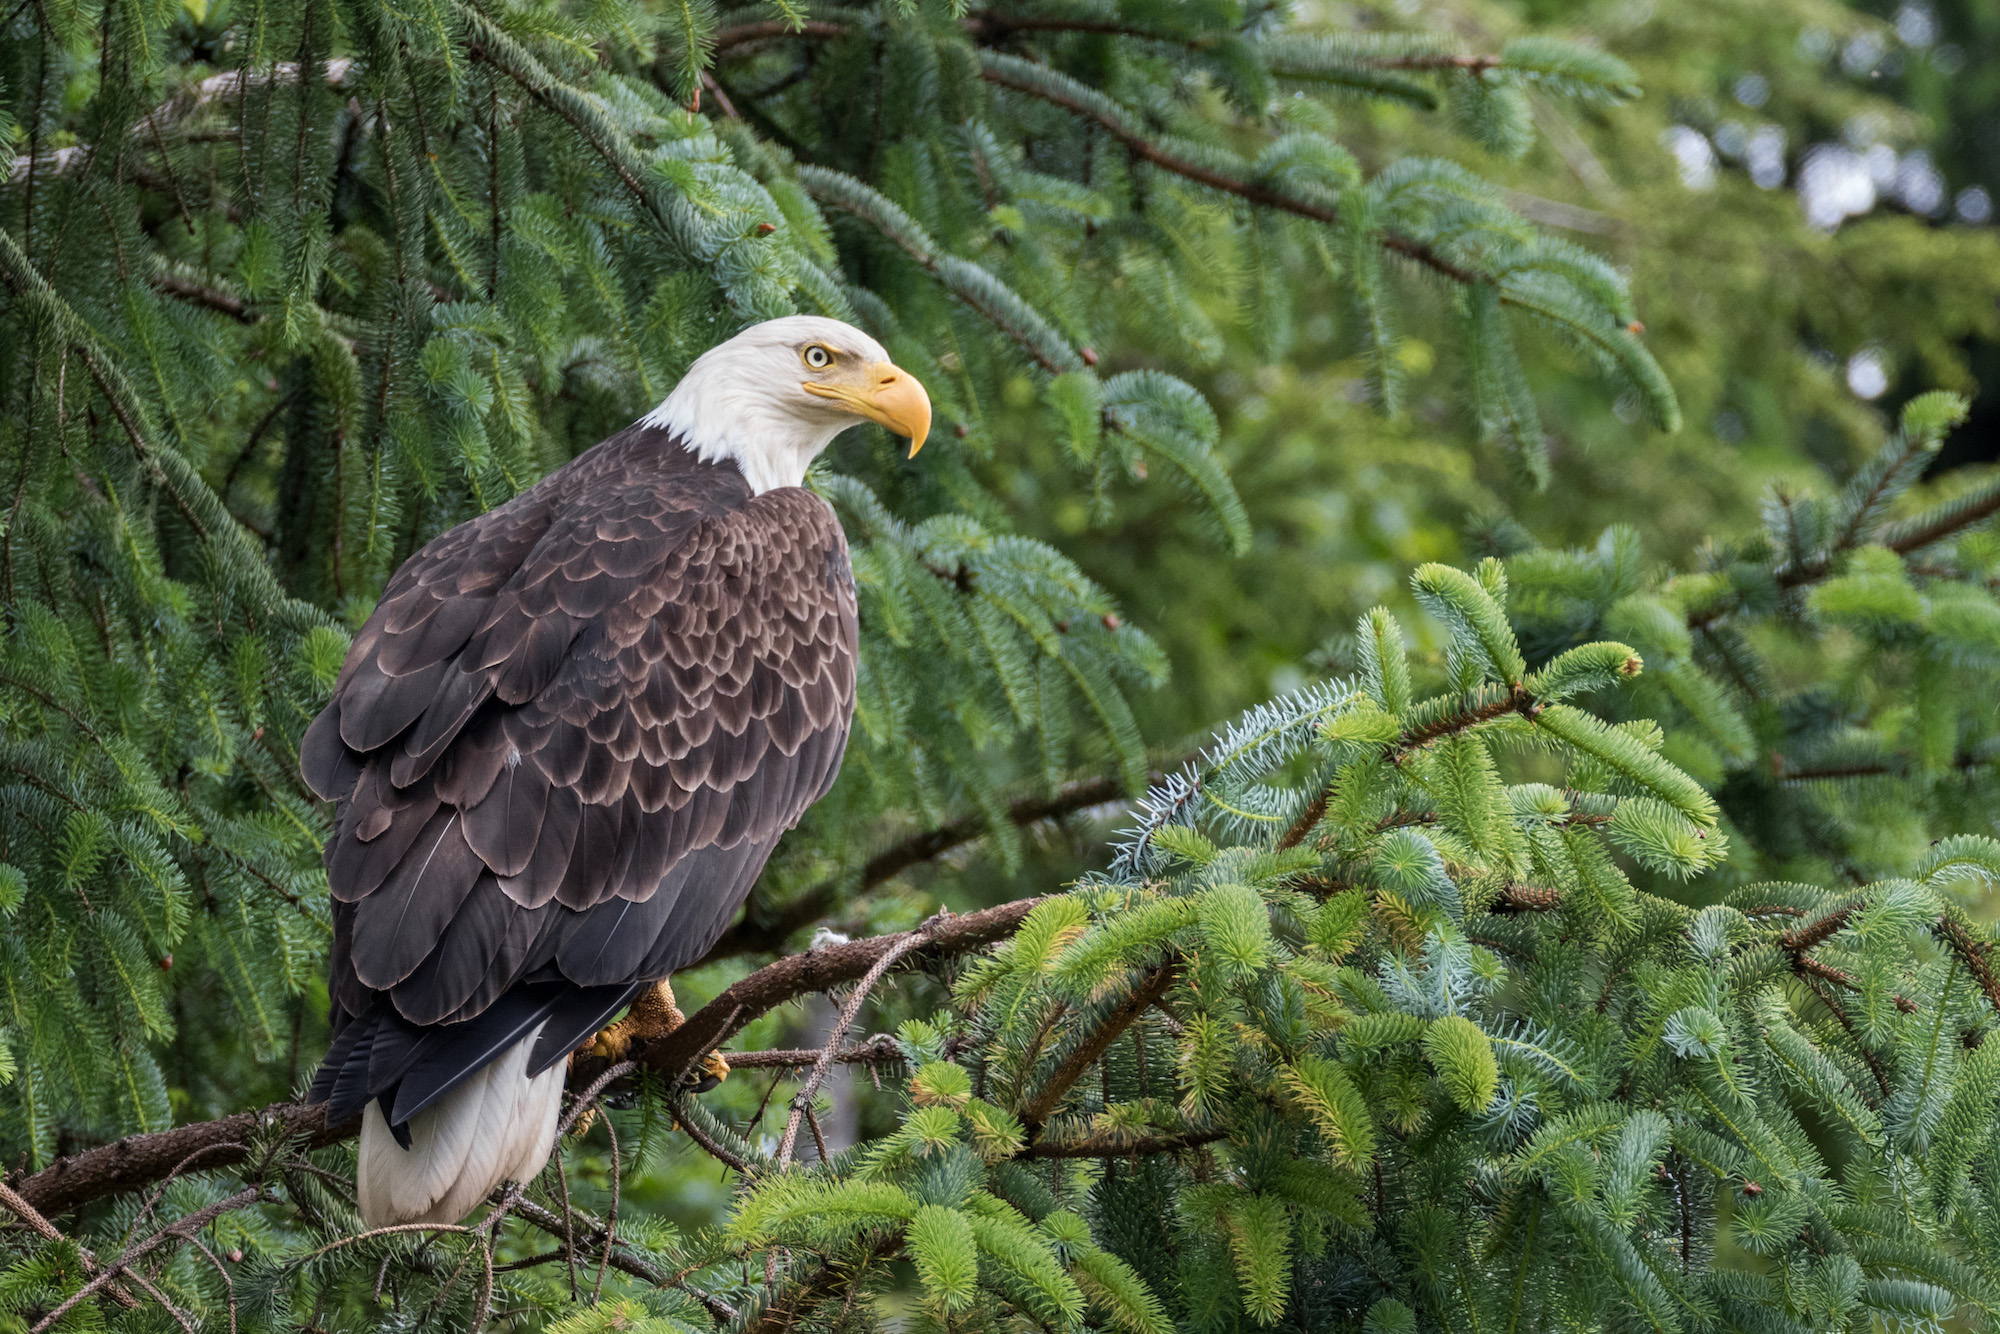 A Bald Eagle in a forest in British Columbia. Photo by Tony Joyce